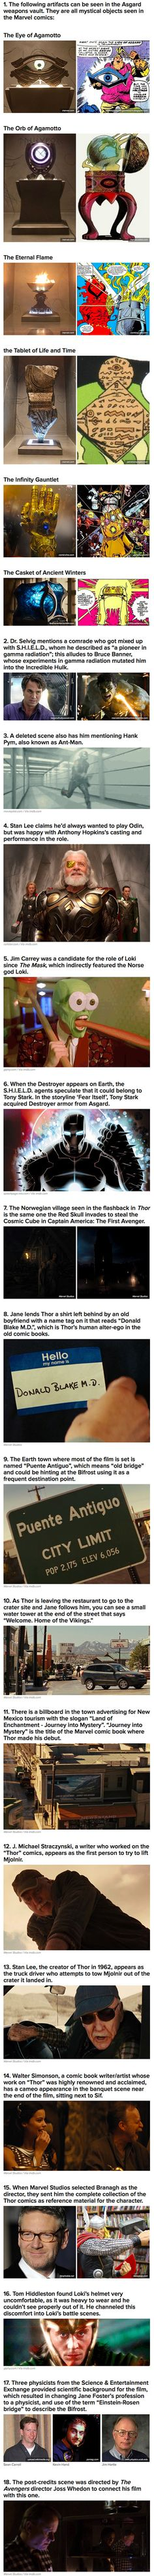 Thor fun facts. The look of disgust you have when reading number 5. There is one Loki!